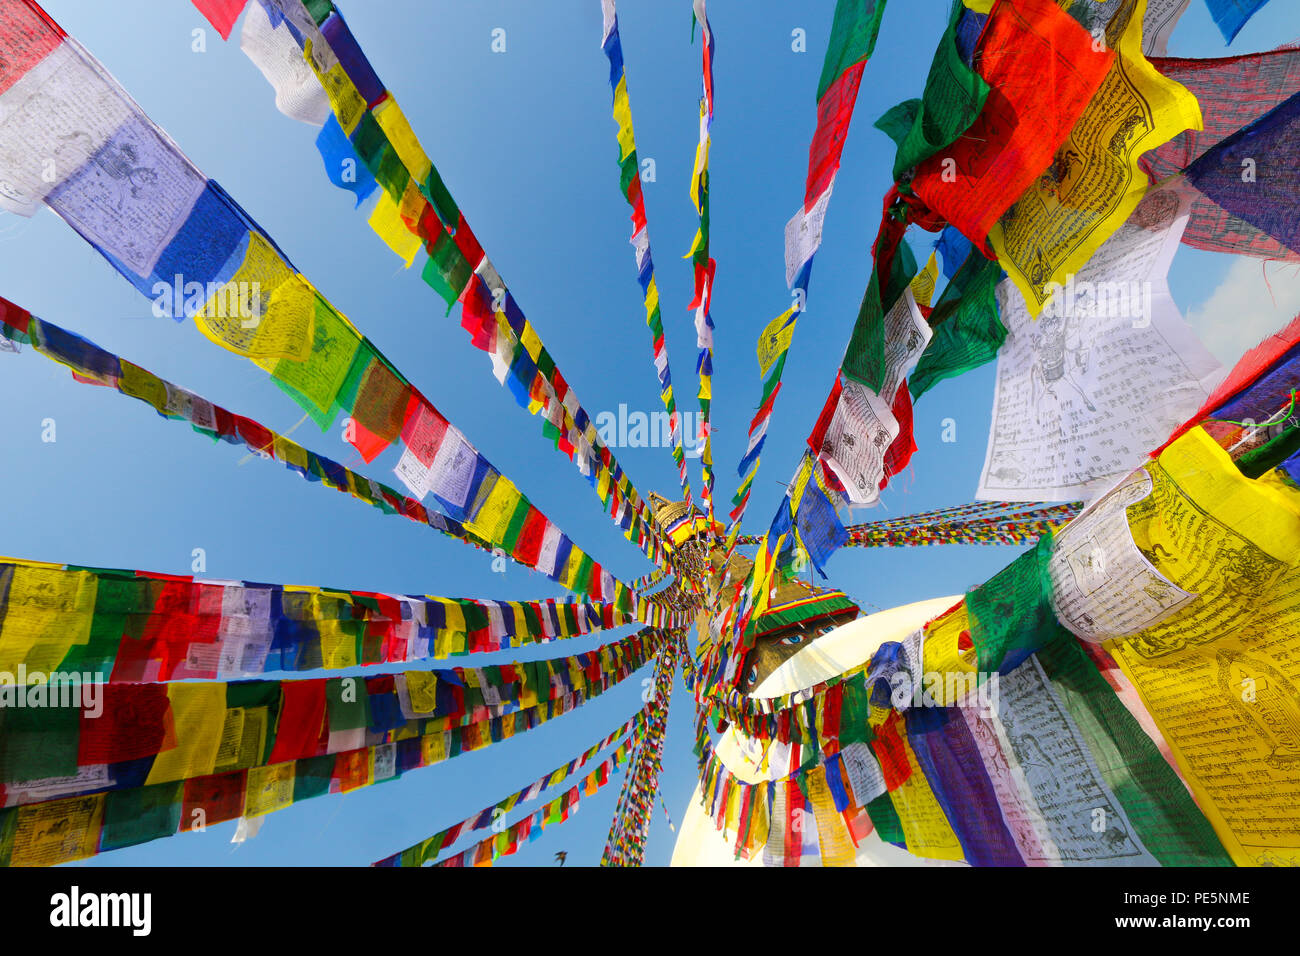 Colorful Prayer Flags with mantras that are believed to be carried by the wind to spread blessings to the world - Stock Image